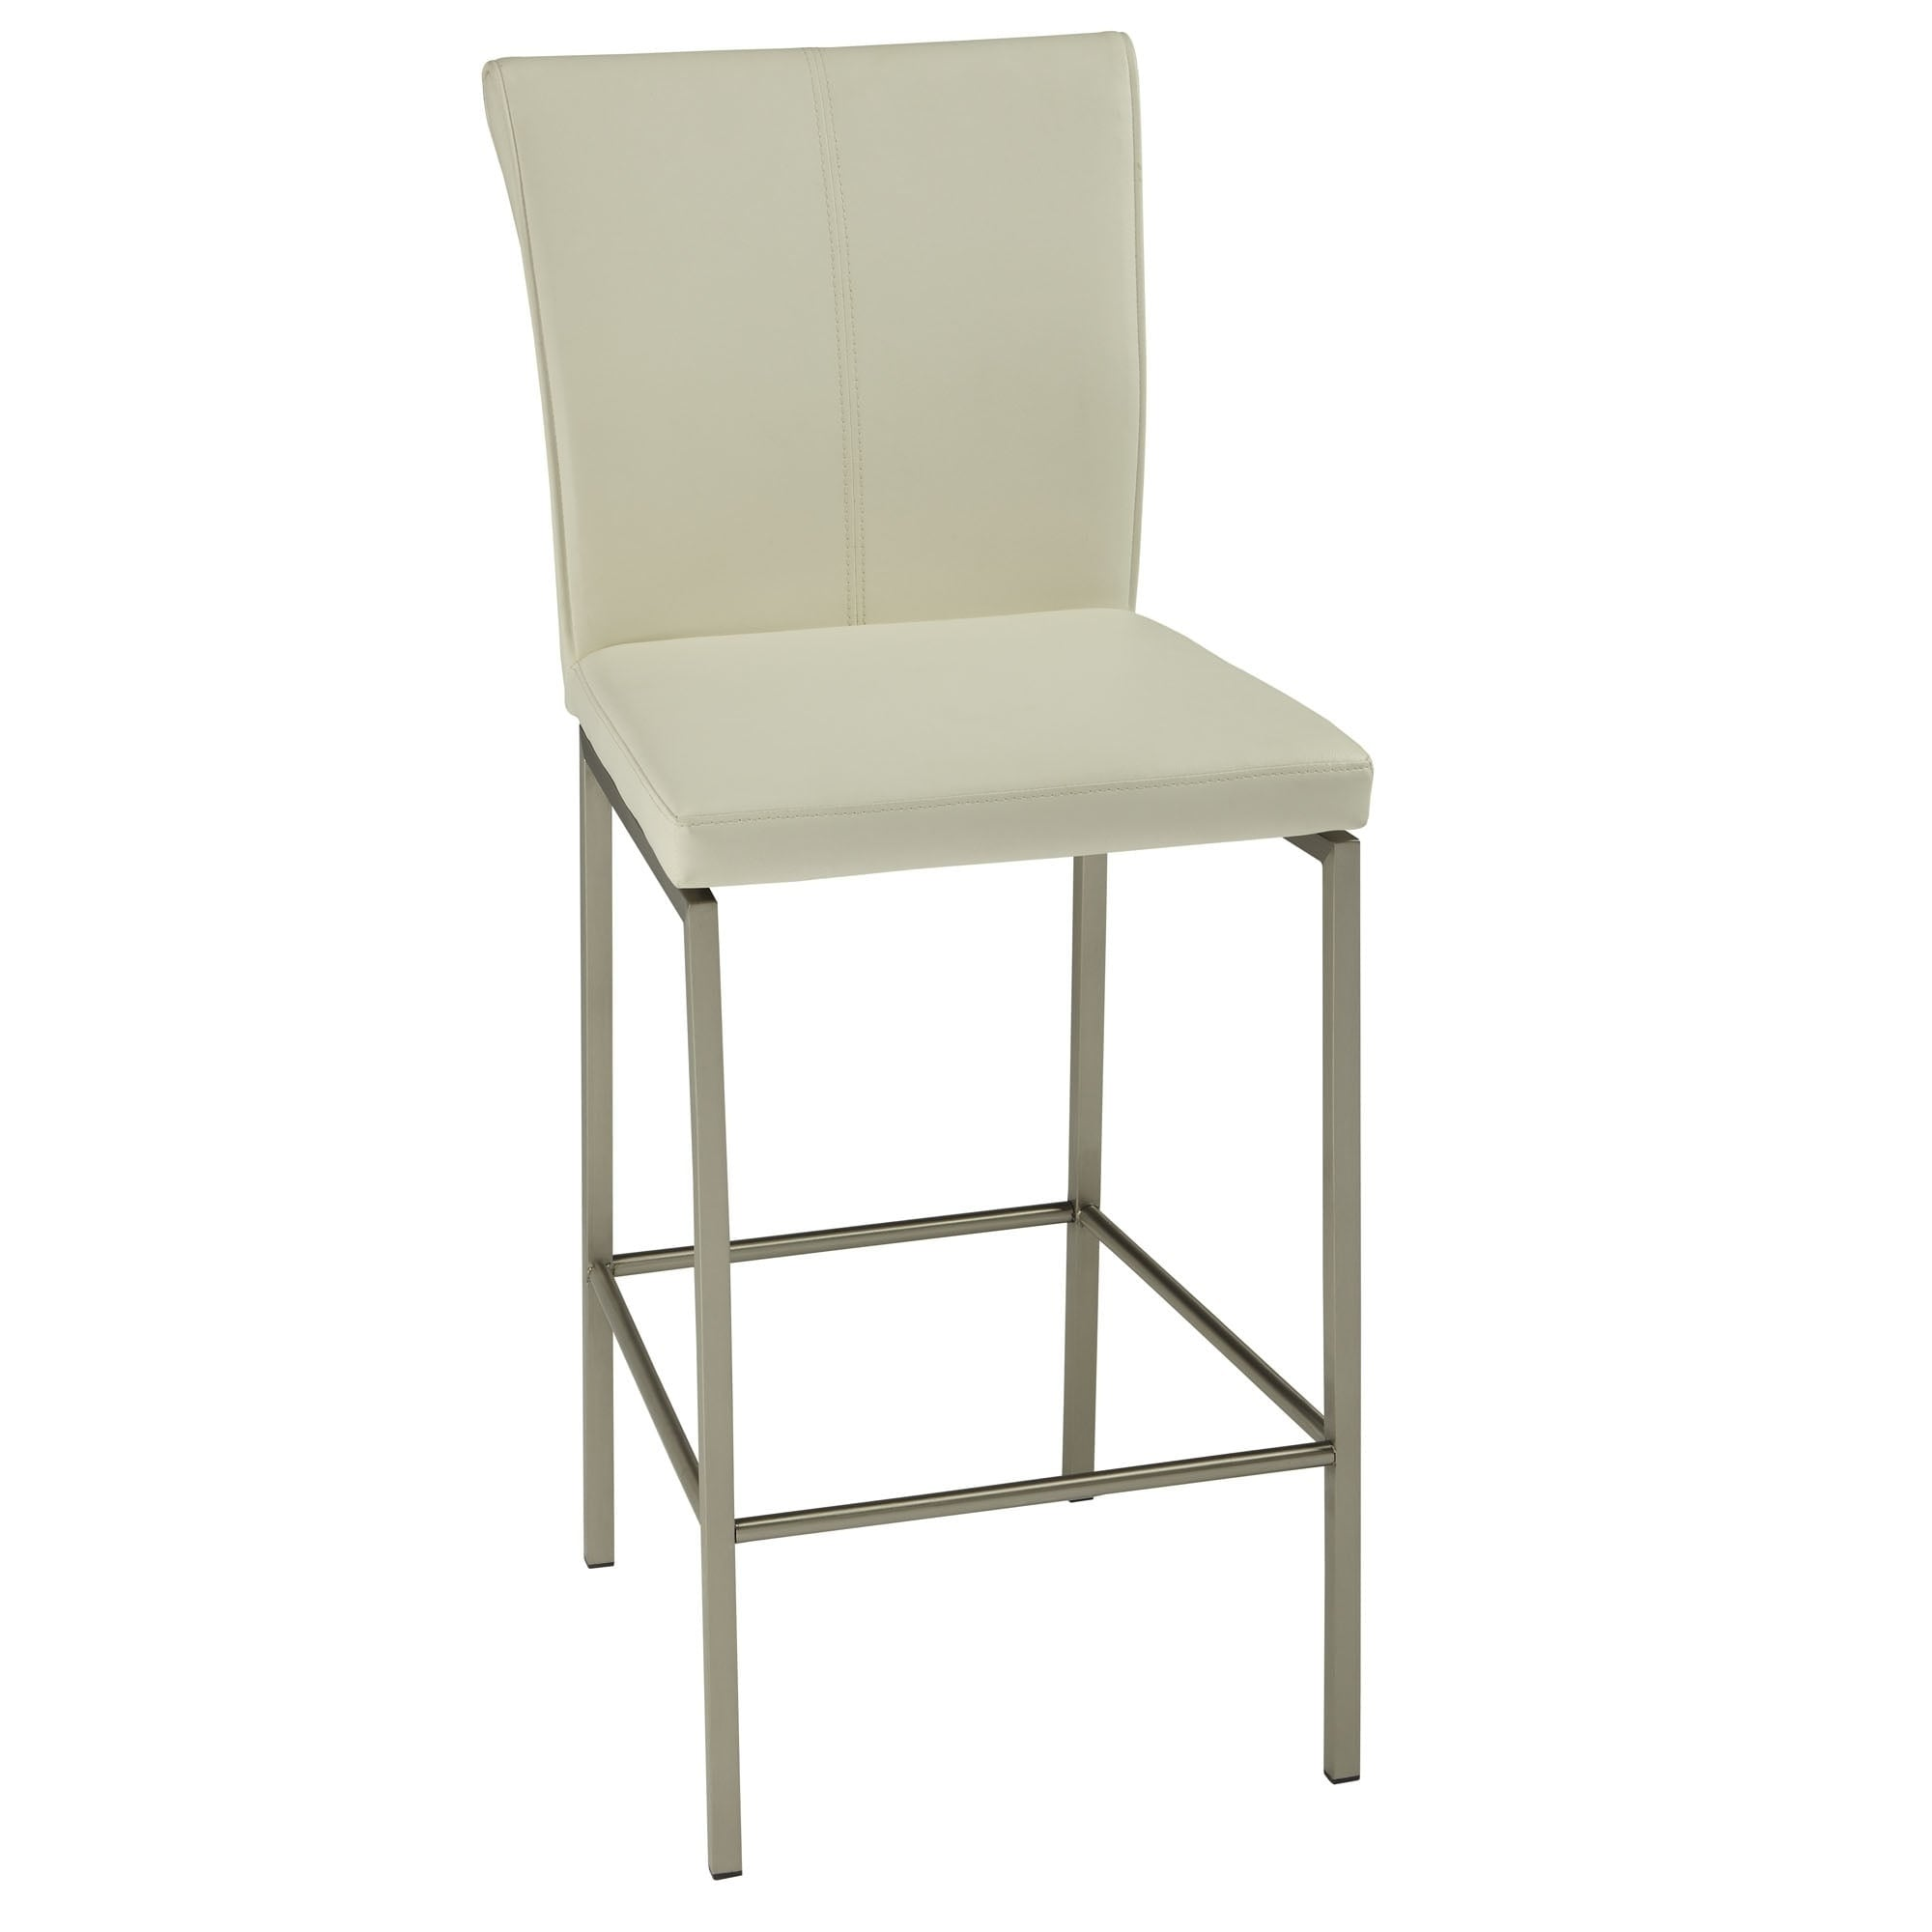 Fashion Bed Group Cheyenne Metal Counter Stool with Glaci.  sc 1 st  Nextag & Cheyenne bar stools | Compare Prices at Nextag islam-shia.org